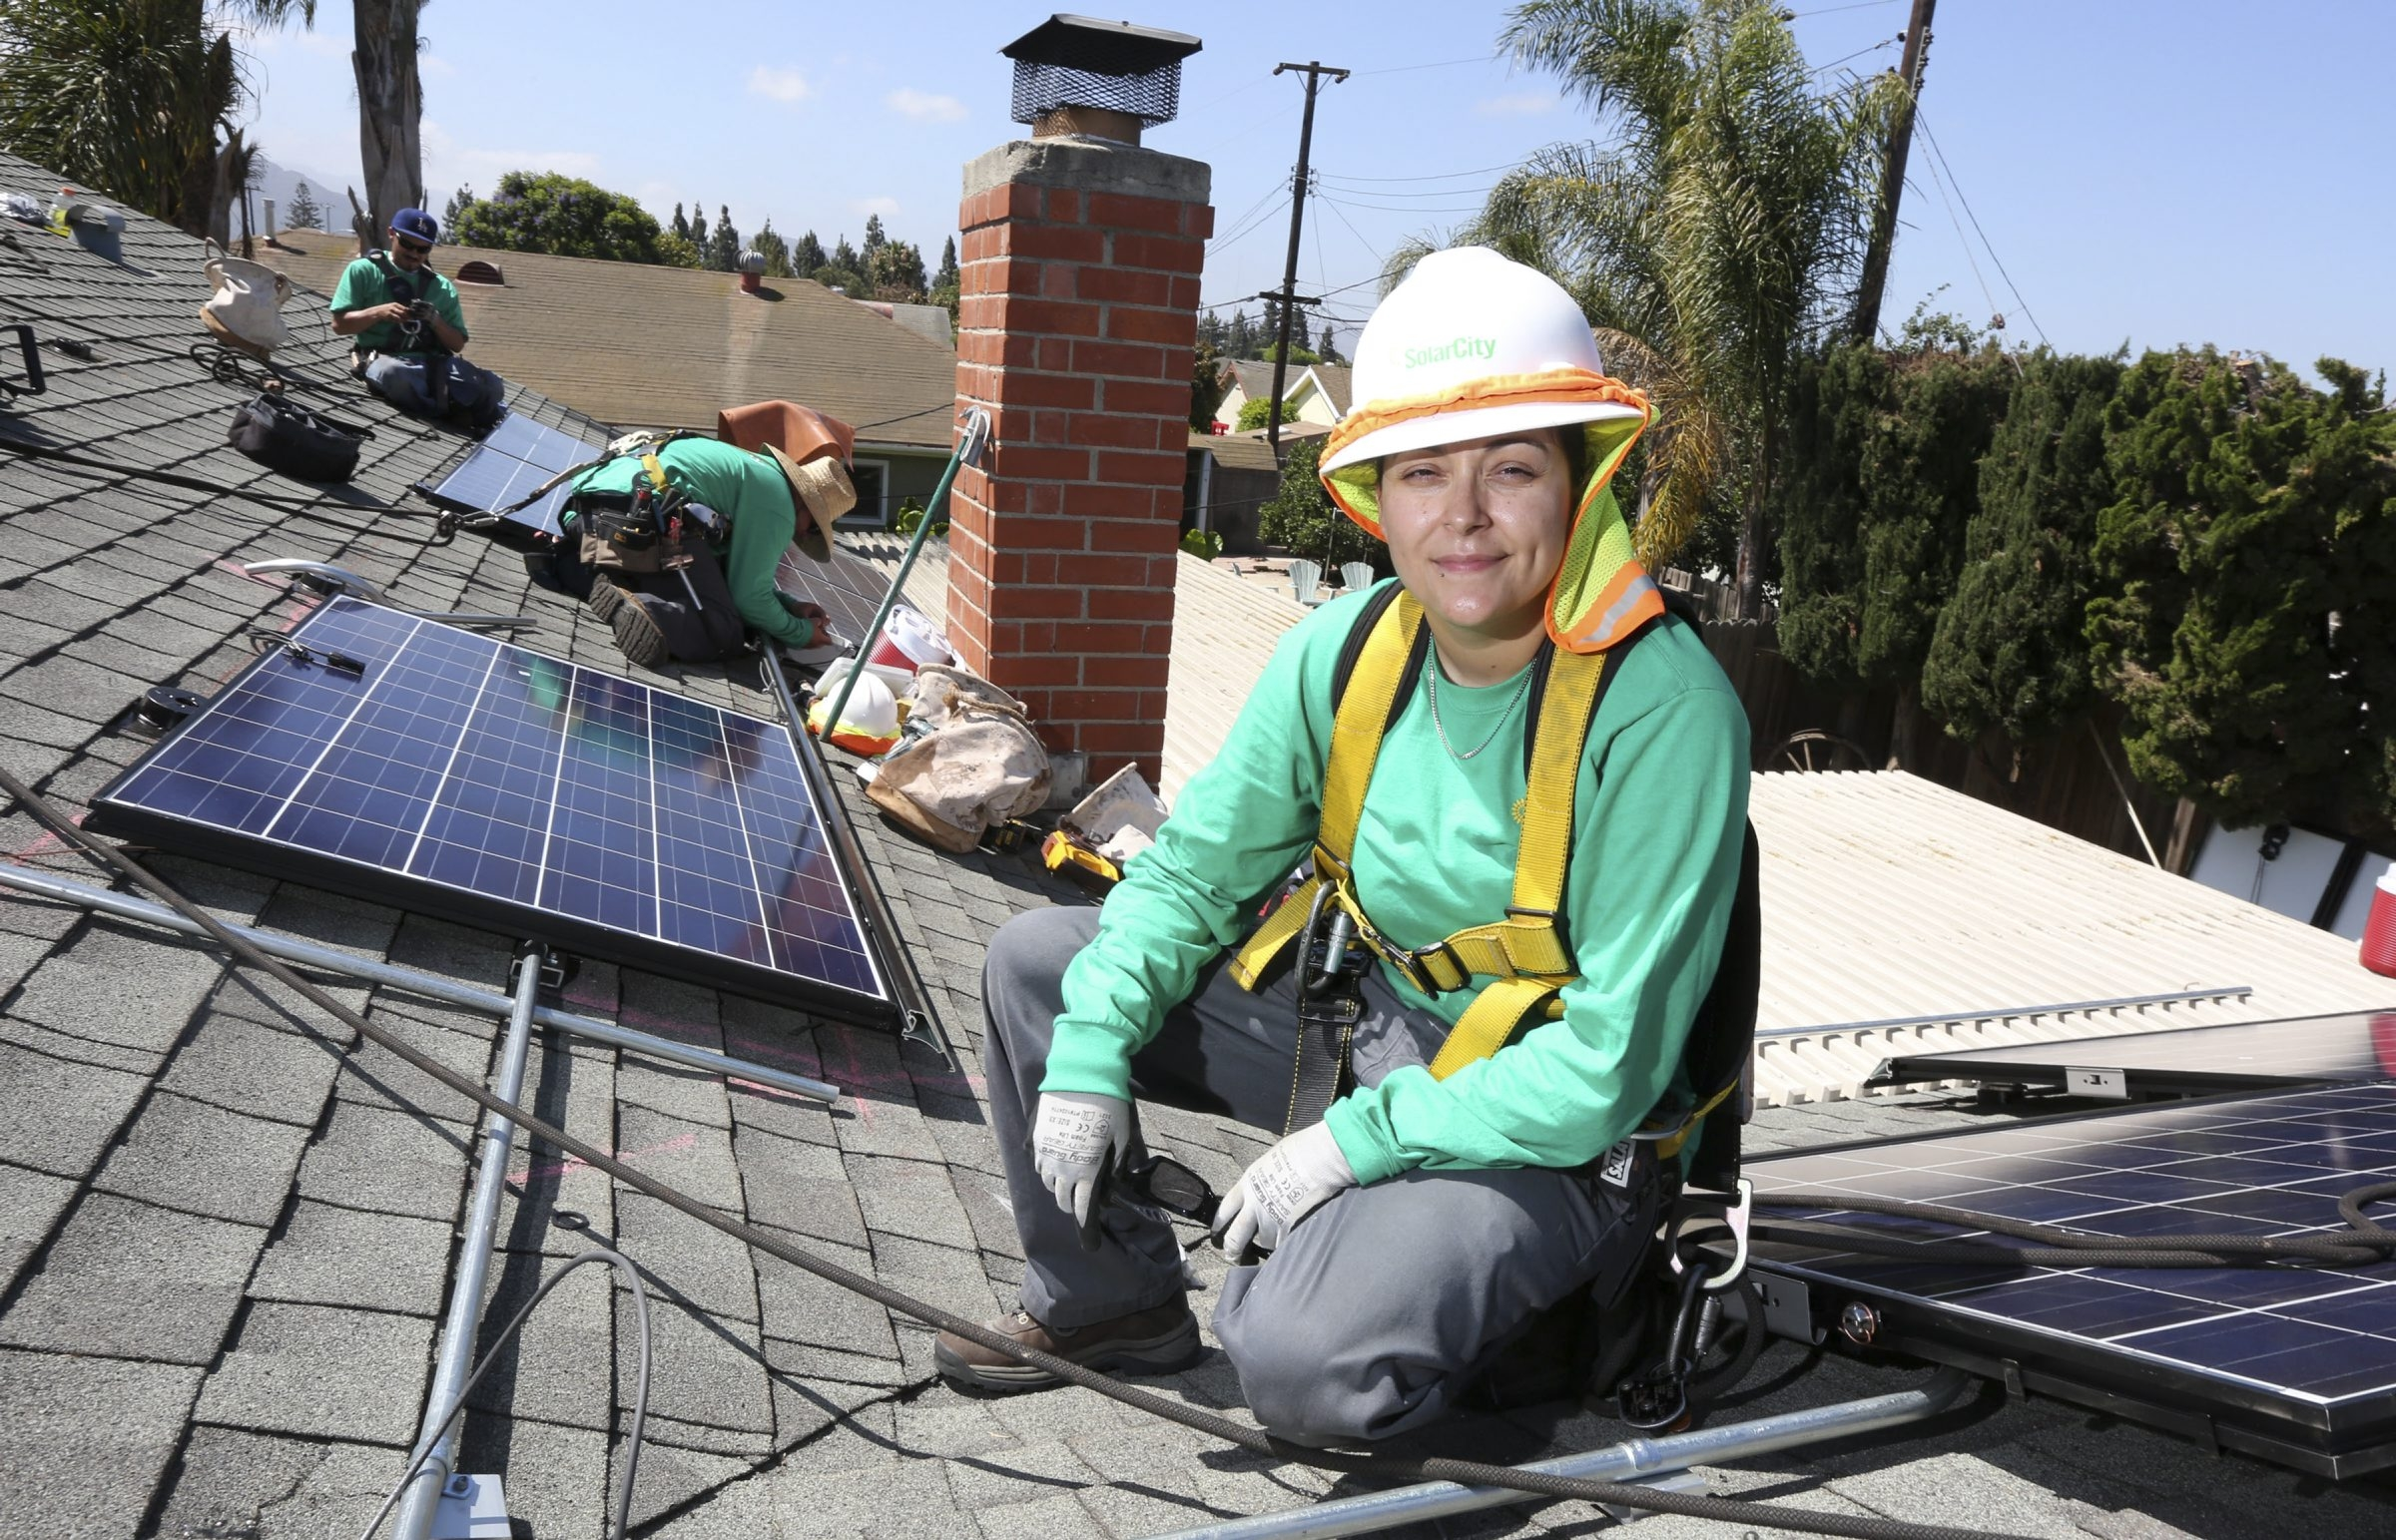 Rocio Farias, a solar panel installer at SolarCity, works on a house in Camarillo, Calif. She supervises six other installers.says itþÄôs satisfying to turn on a solar panel system and show people their electric meter going backward, sending power to the grid. (J. Emilio Flores/The) — PHOTO MOVED IN ADVANCE AND NOT FOR USE – ONLINE OR IN PRINT – BEFORE AUG. 03, 2014.